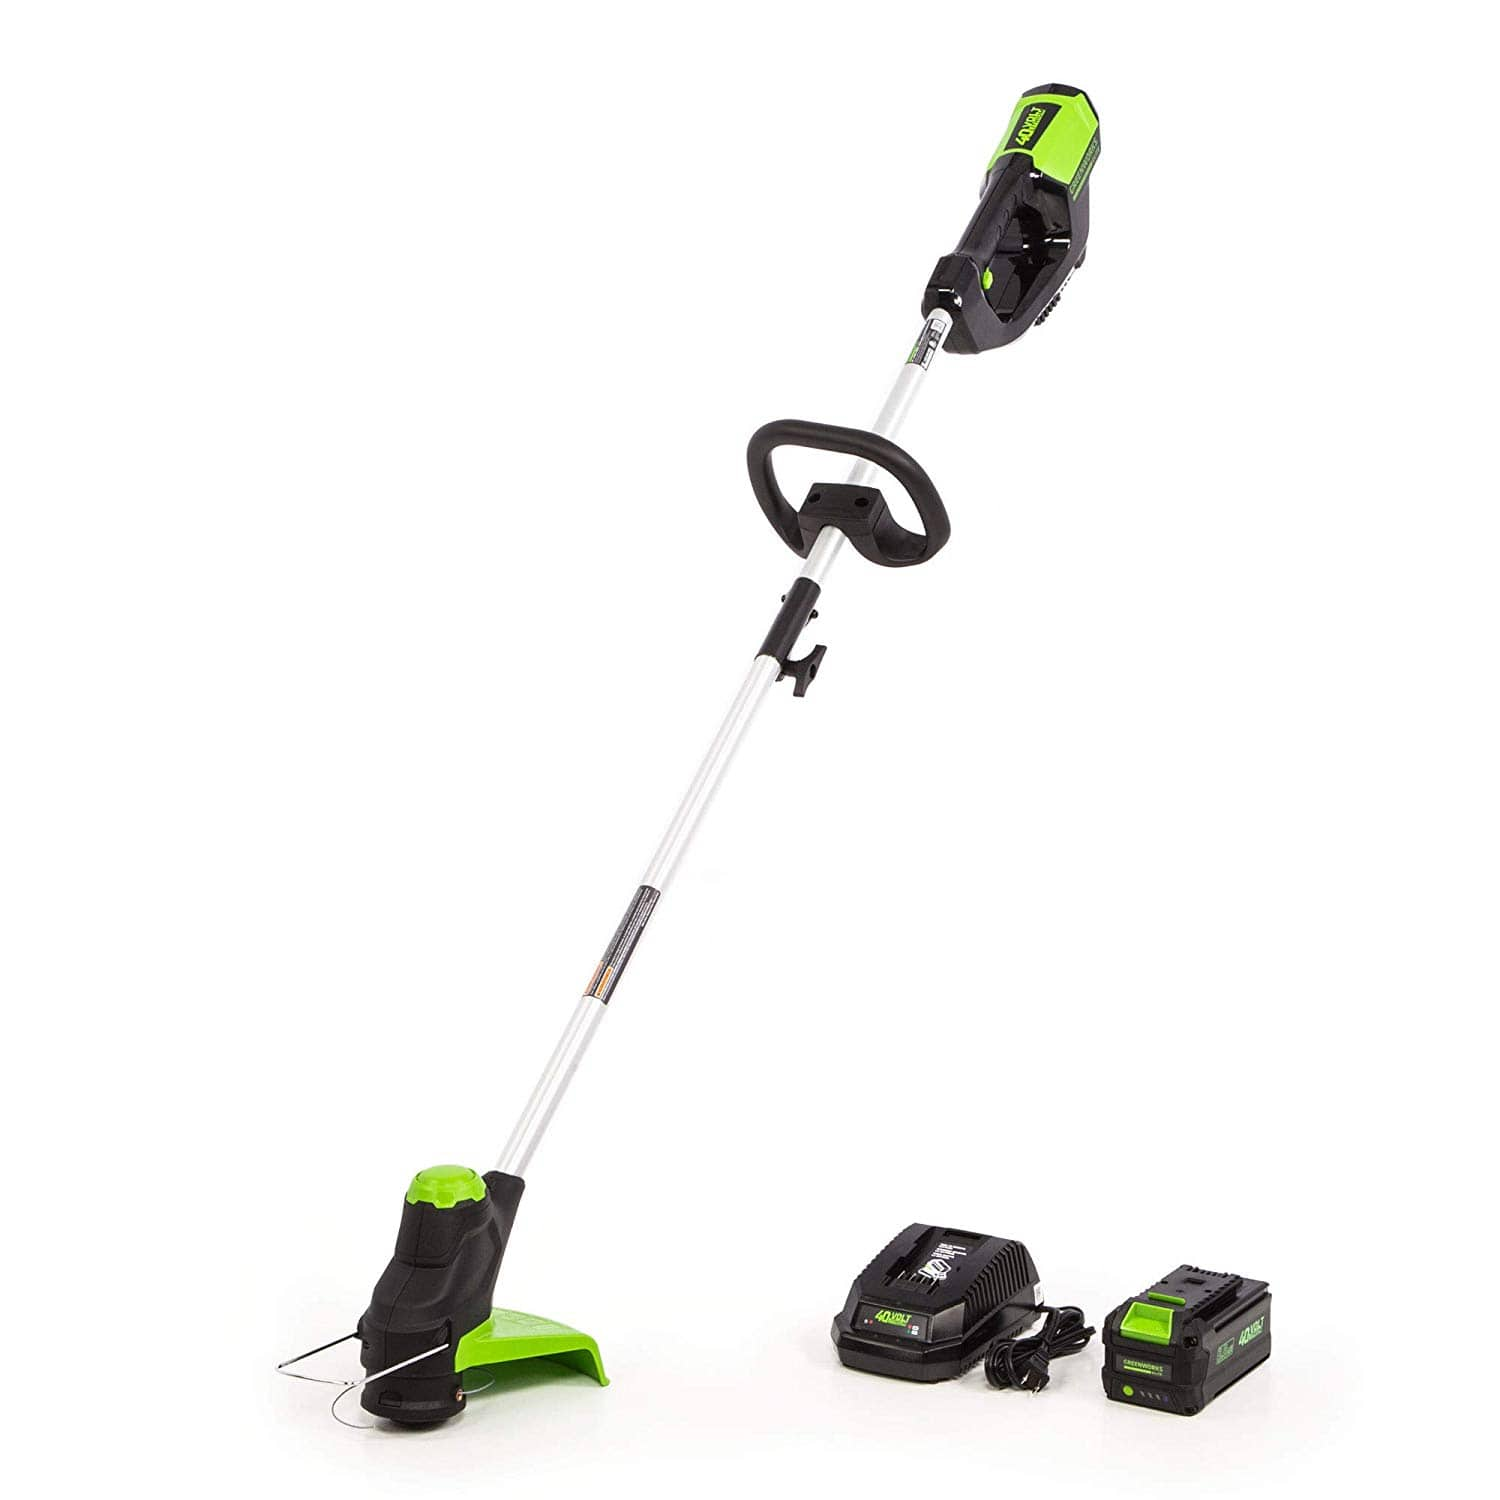 Amazon warehouse - Greenworks ST-120 12-Inch 40V Cordless String Trimmer - includes 3.0ah battery and charger - From $62.48